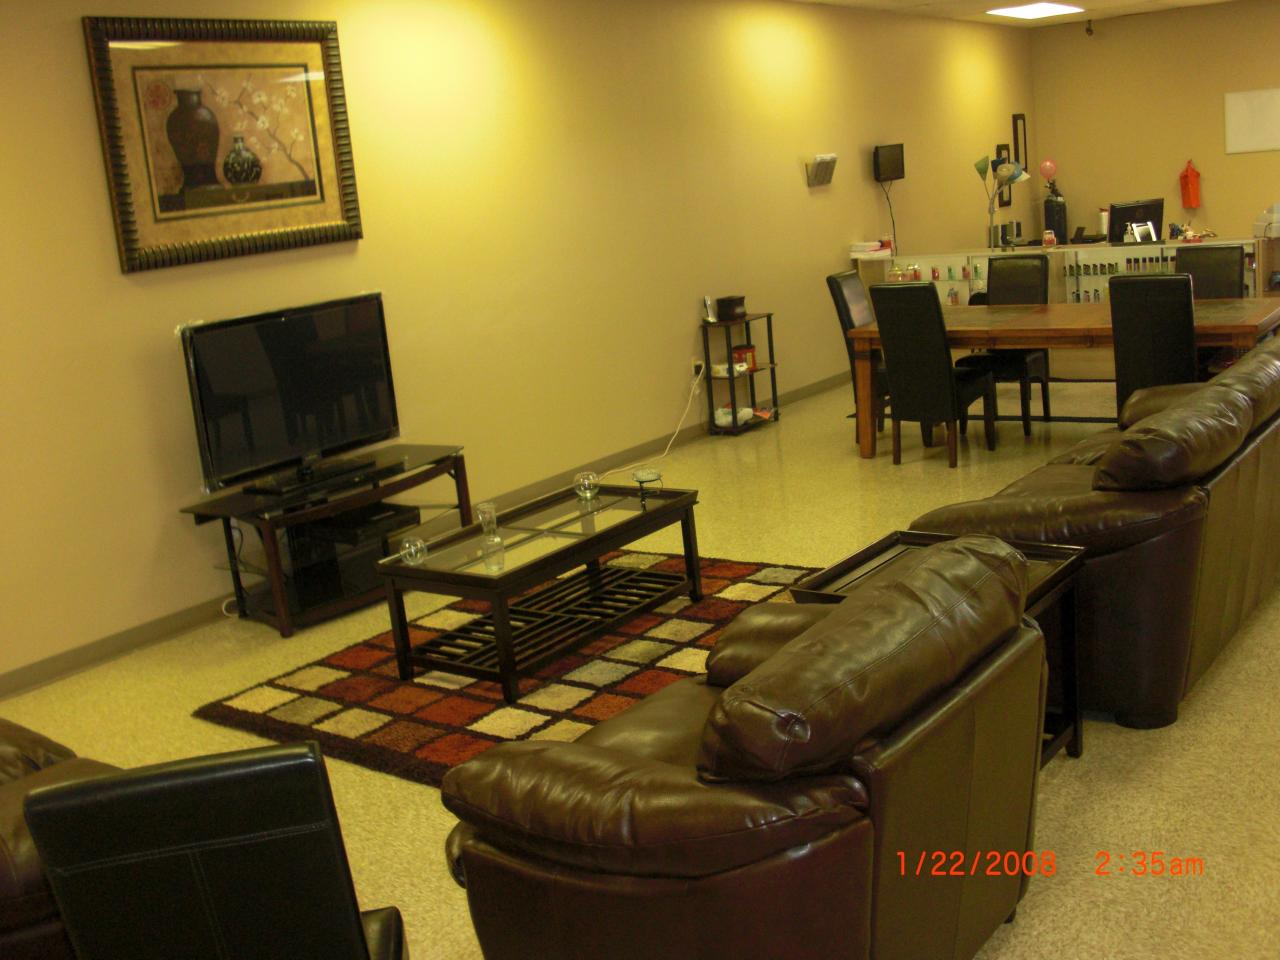 oils 4 us party room for rent only $600 !! 4 us english 4 about us #13